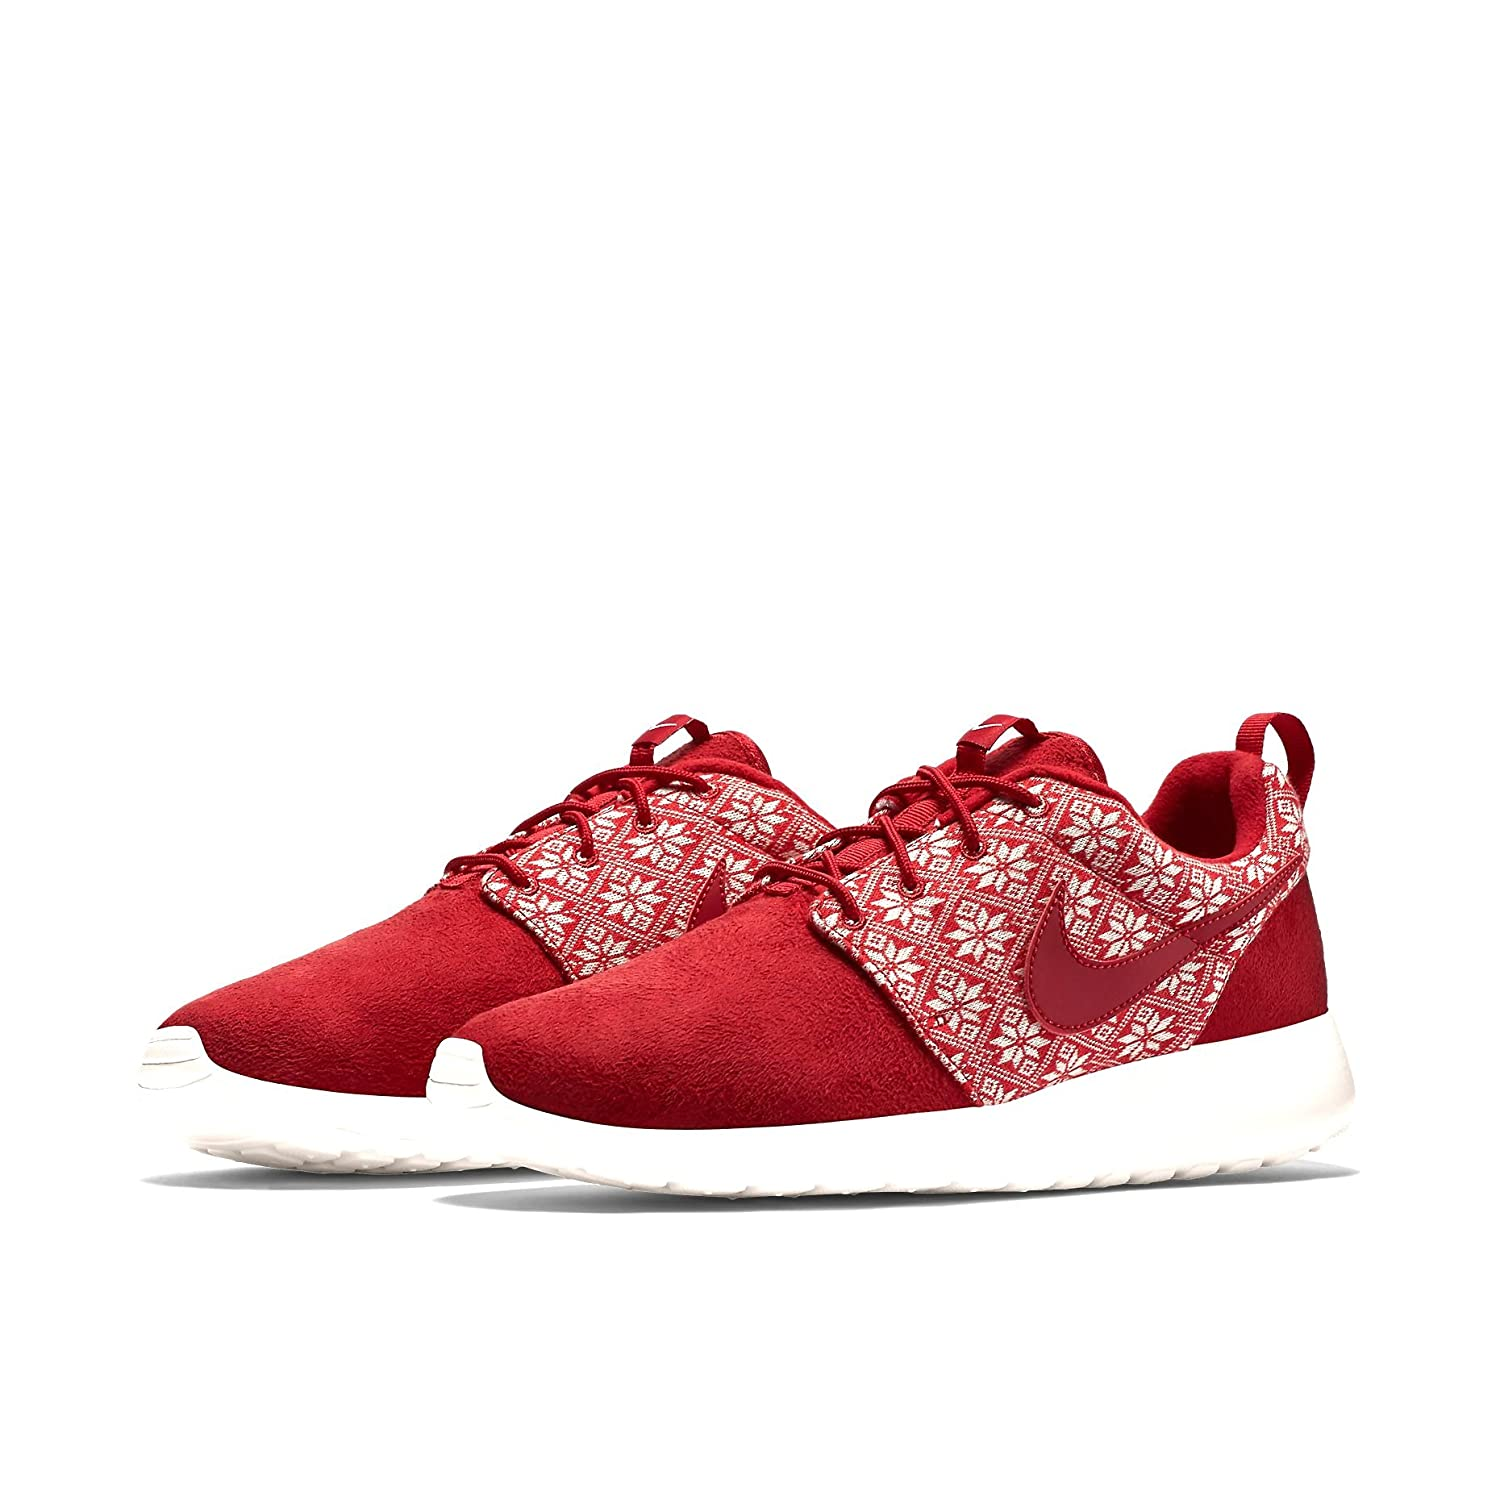 69f5c6e3157ee Nike Men s Roshe One Winter Running Shoes